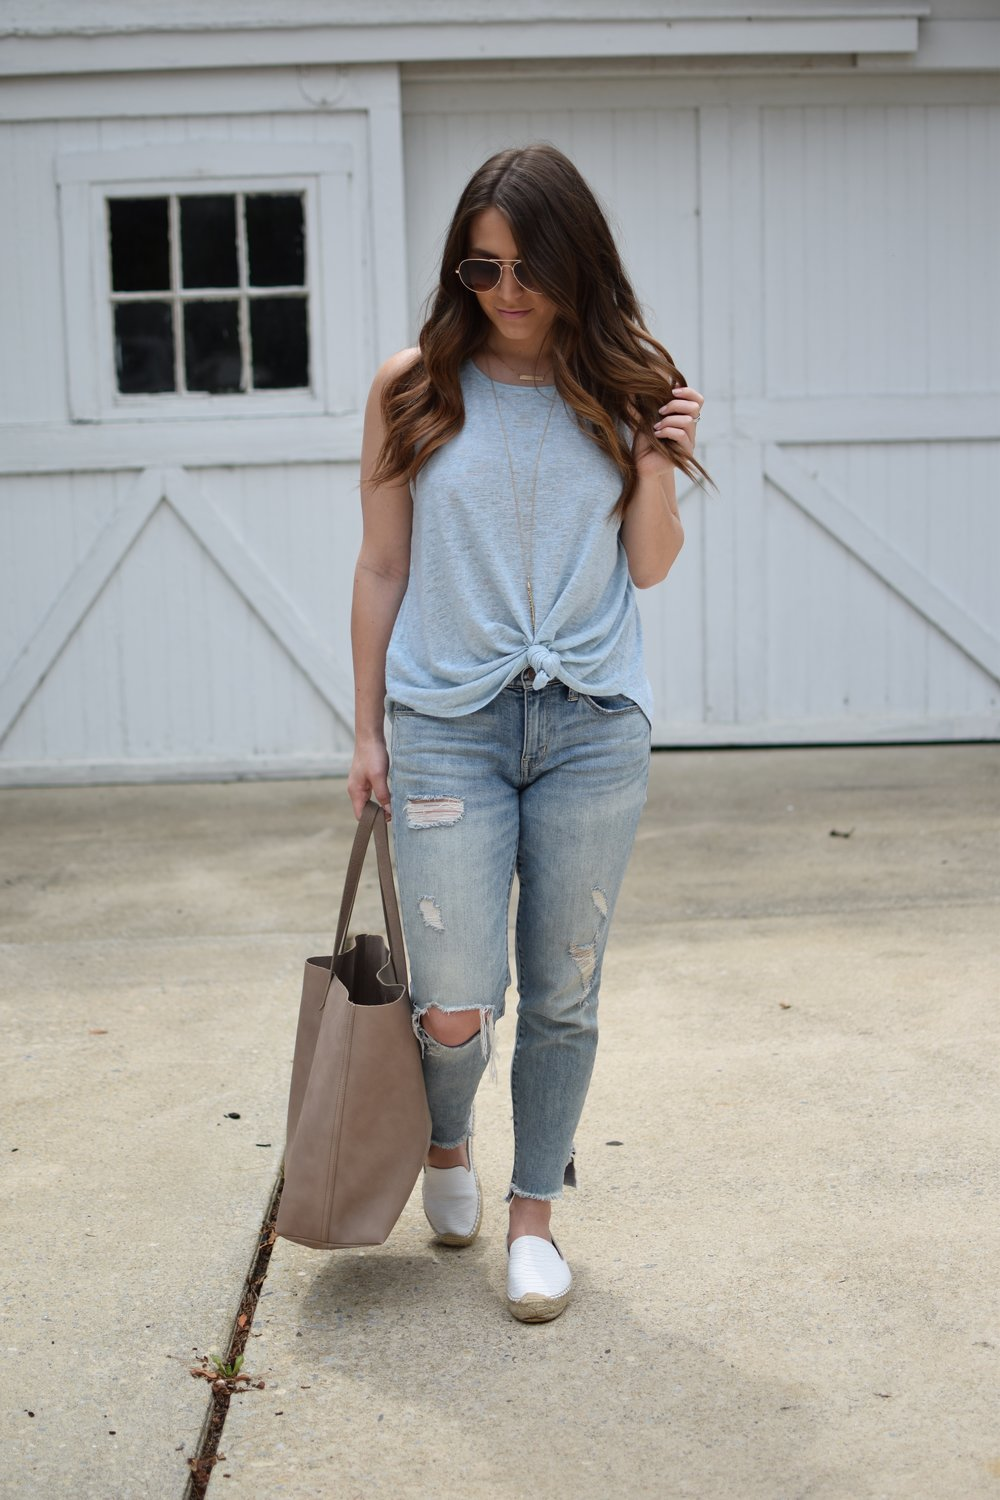 casual summer outfit / knotted tank top / distressed denim / espadrilles